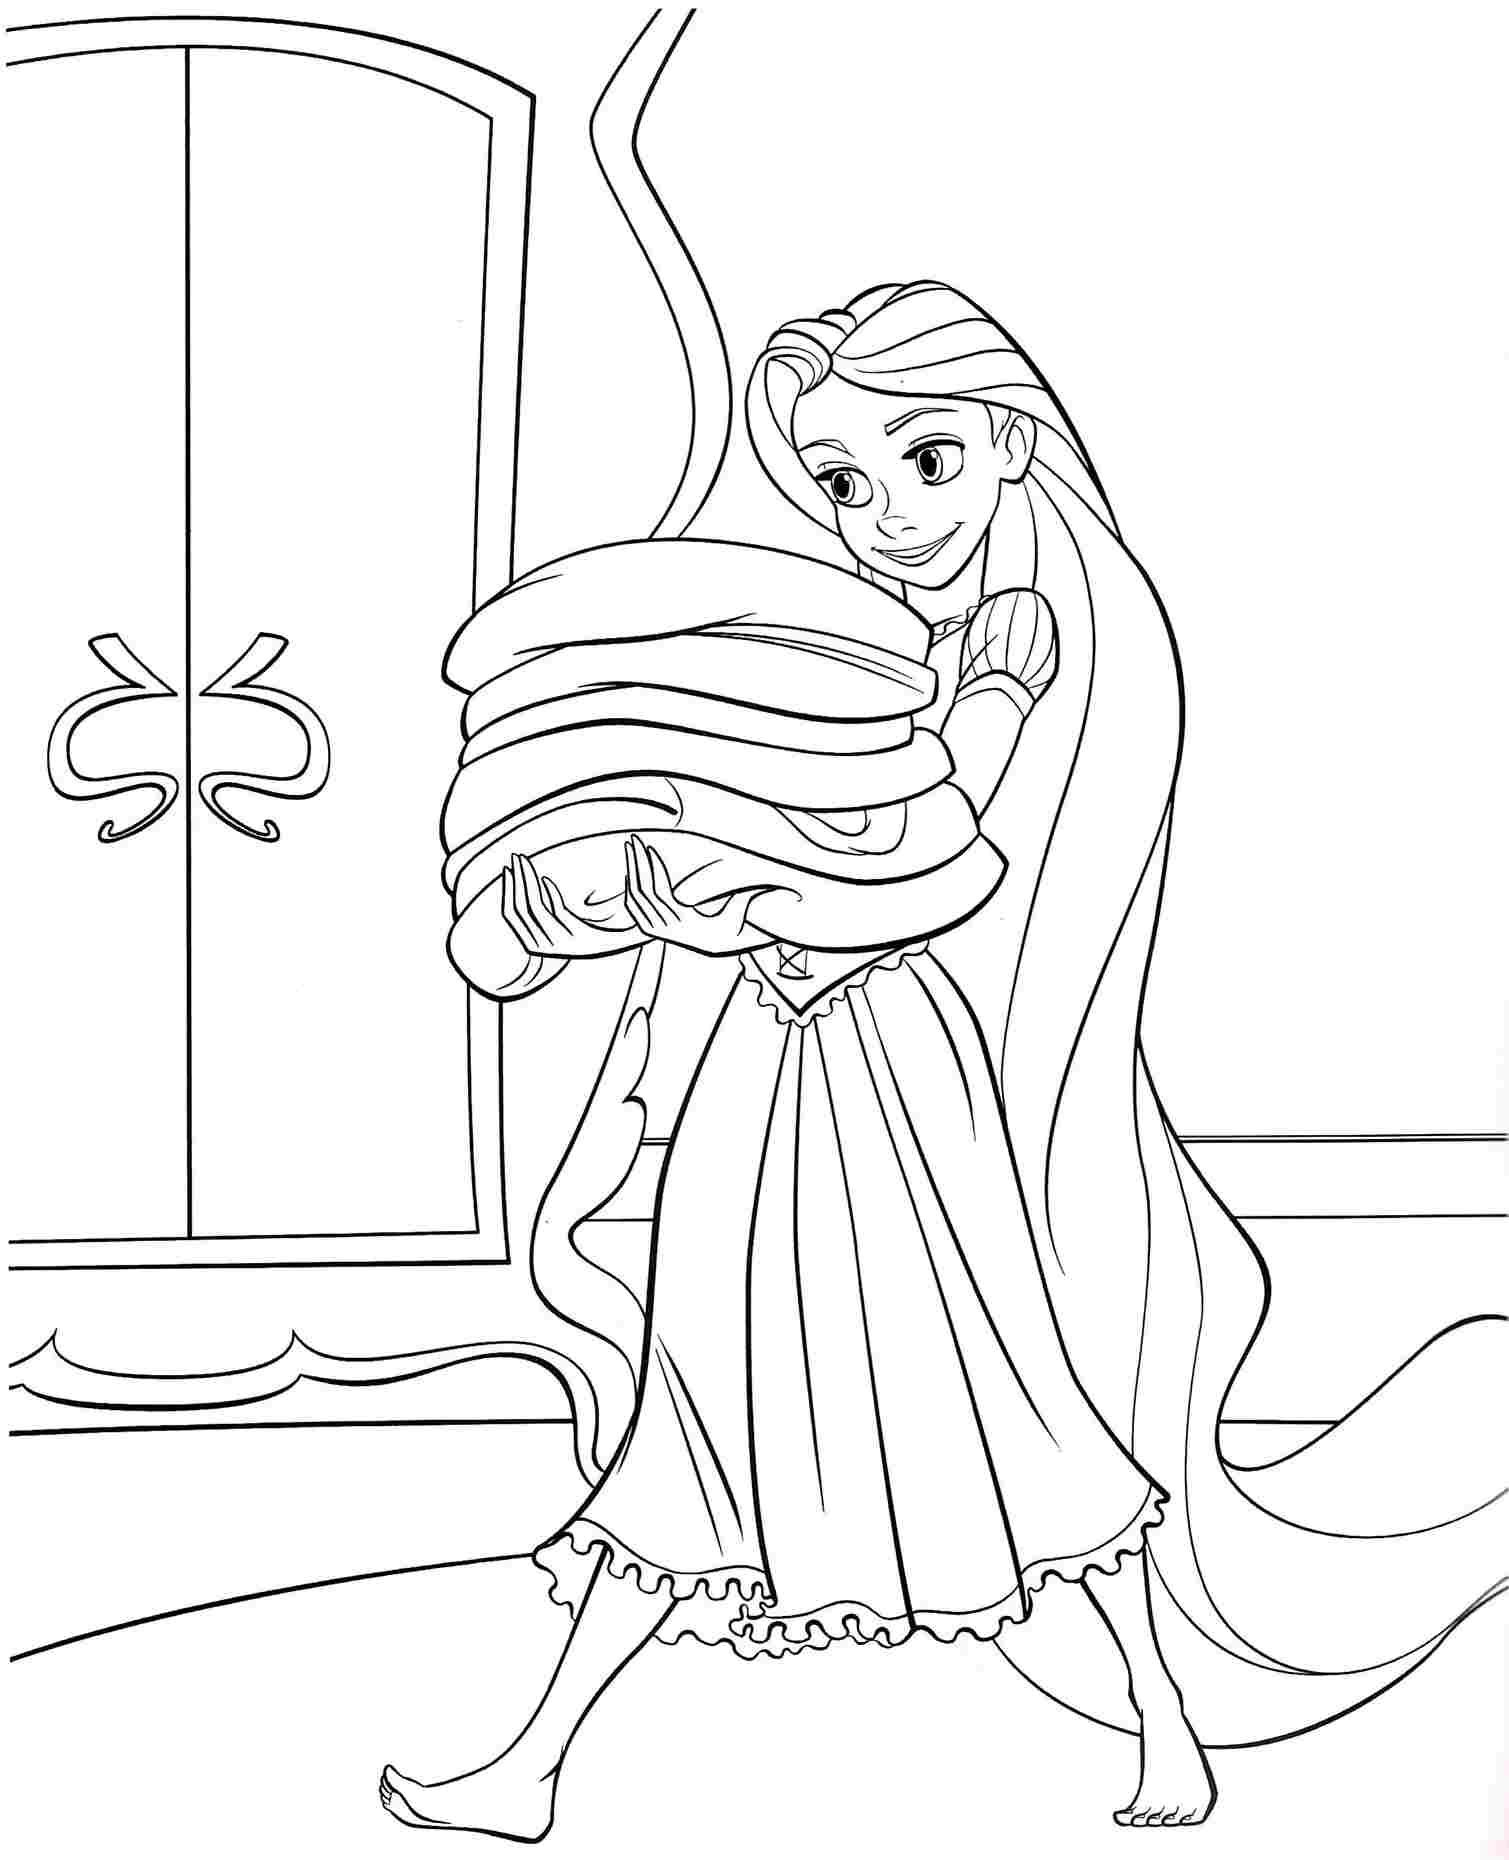 Printable coloring pages tangled - Tangled Rapunzel Coloring Page From Tangled Category Select From 25587 Printable Crafts Of Cartoons Nature Animals Bible And Many More